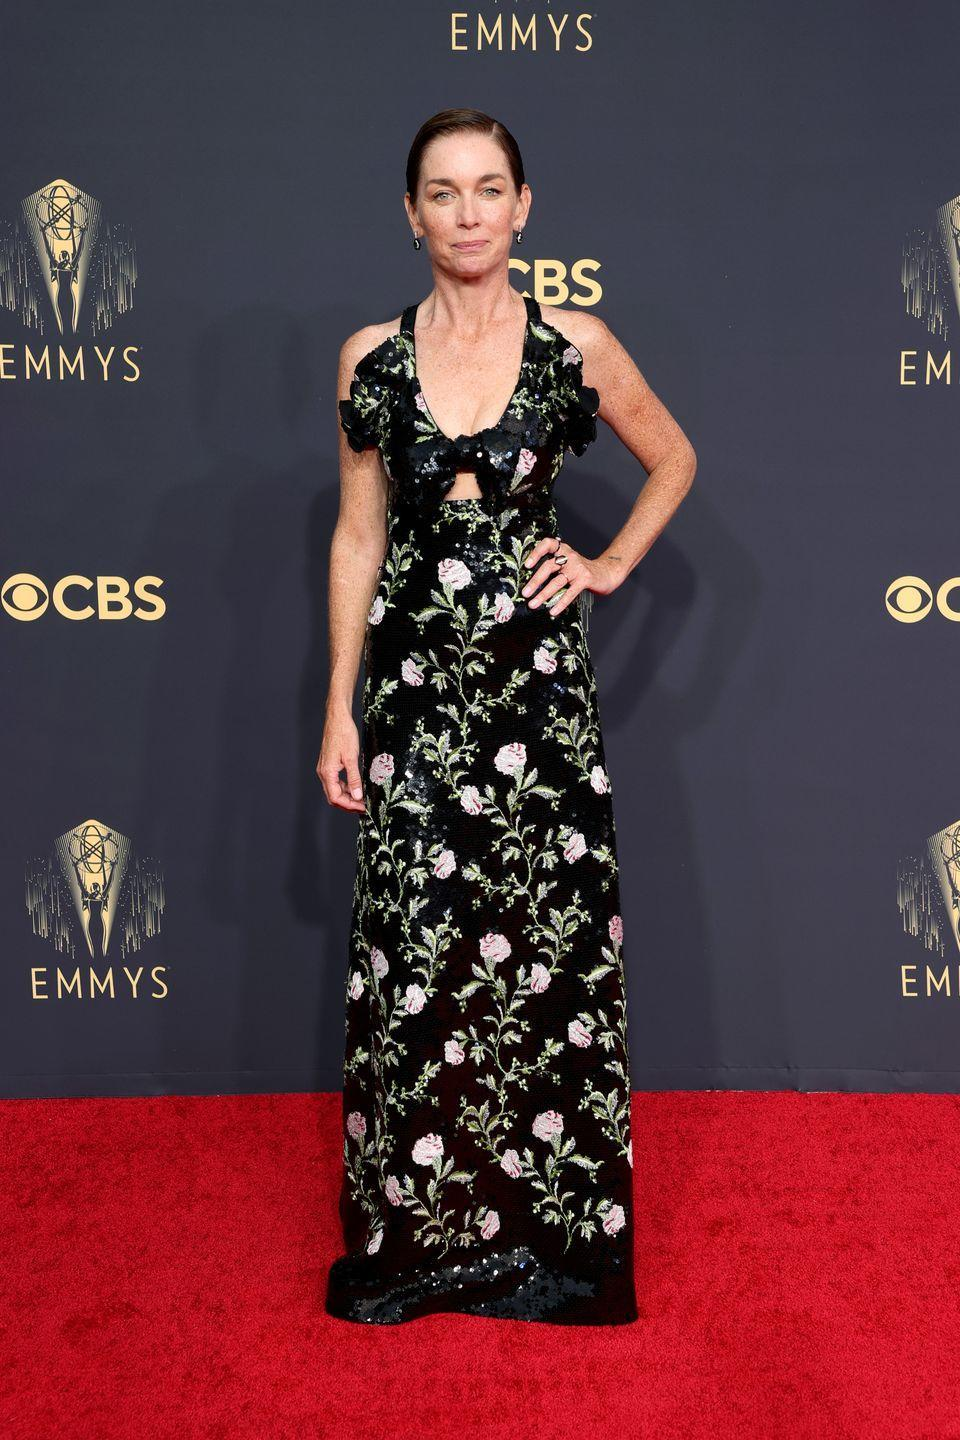 <p><strong>What:</strong> Giambattista Valli and Nikos Koulis jewelry</p><p><strong>Why: </strong>Nicholson's winning role in the Mare of Easttown was far from glamorous, but this look showed her glamorous, edgy, and romantic sides, complete with an all-embroidered sheen, a chinoiserie floral print, a ruffled neckline, and a cutout at the waist.</p>